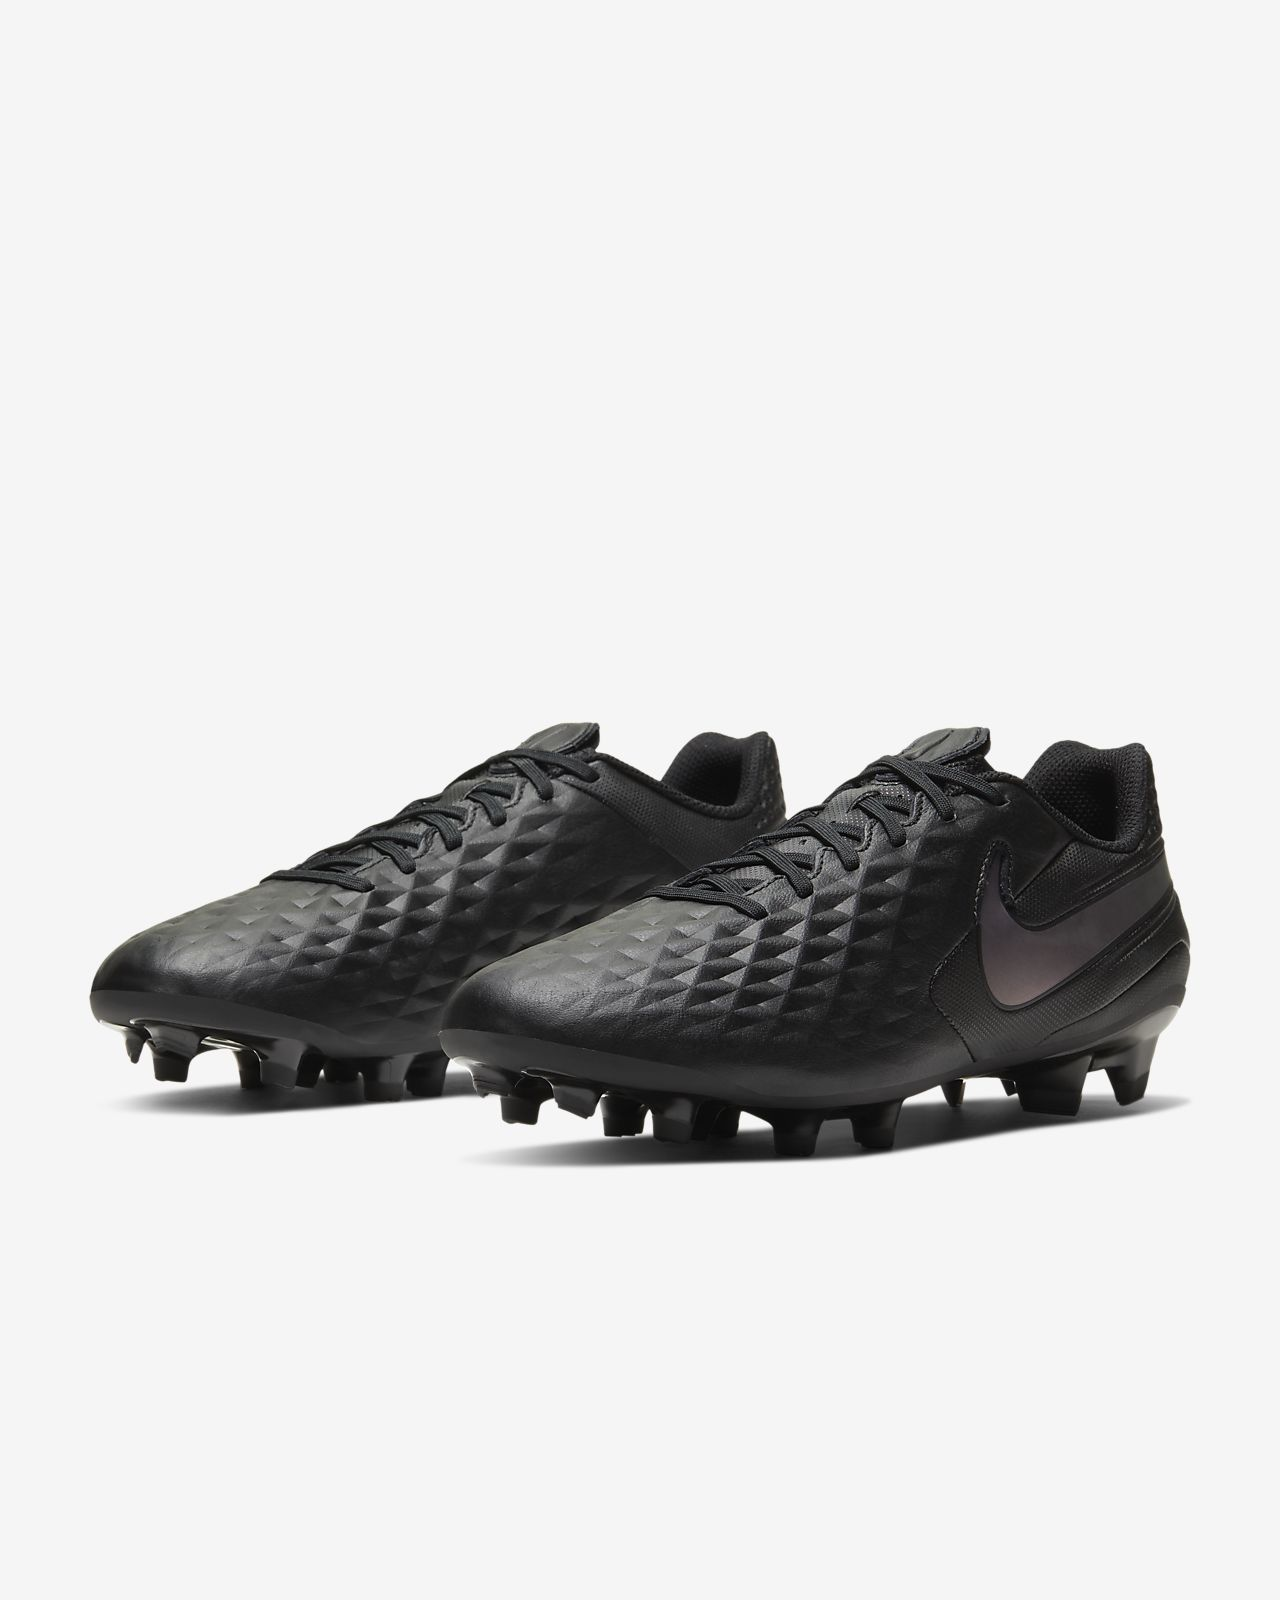 Nike Tiempo Legend 8 Academy MG Multi Ground Soccer Cleat